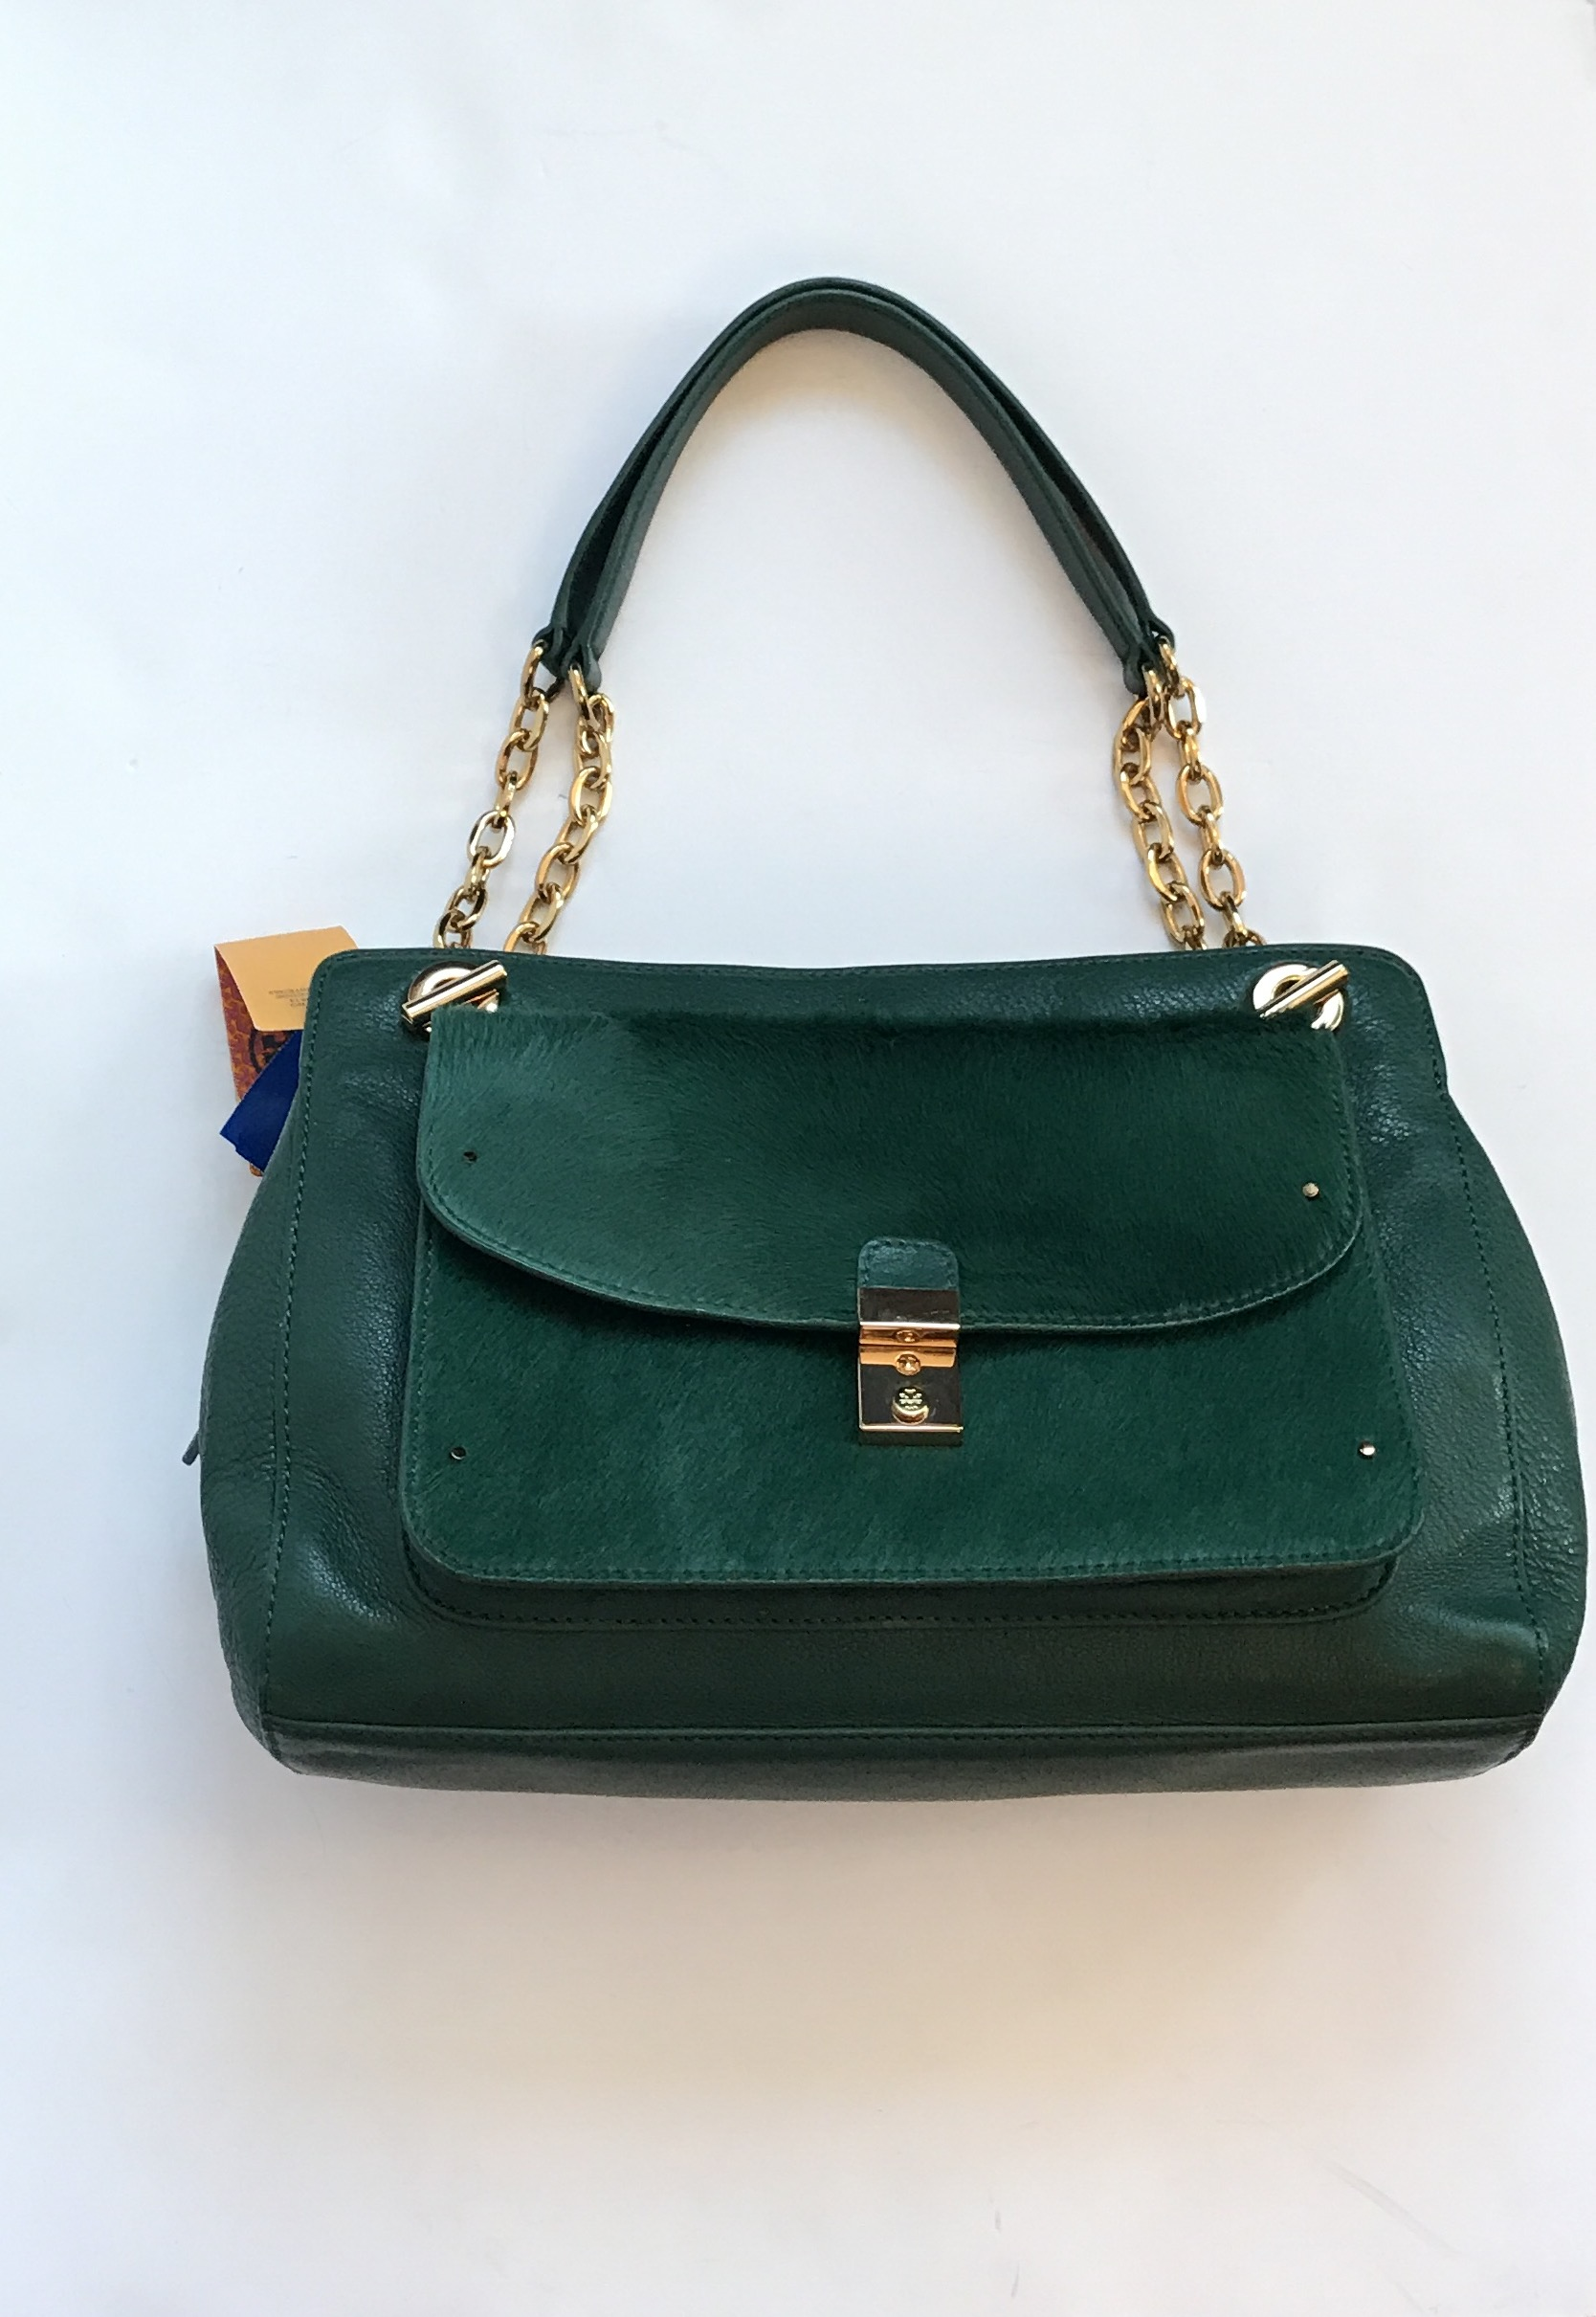 Tory Burch with pony Purses, Handbags Price: $250.00